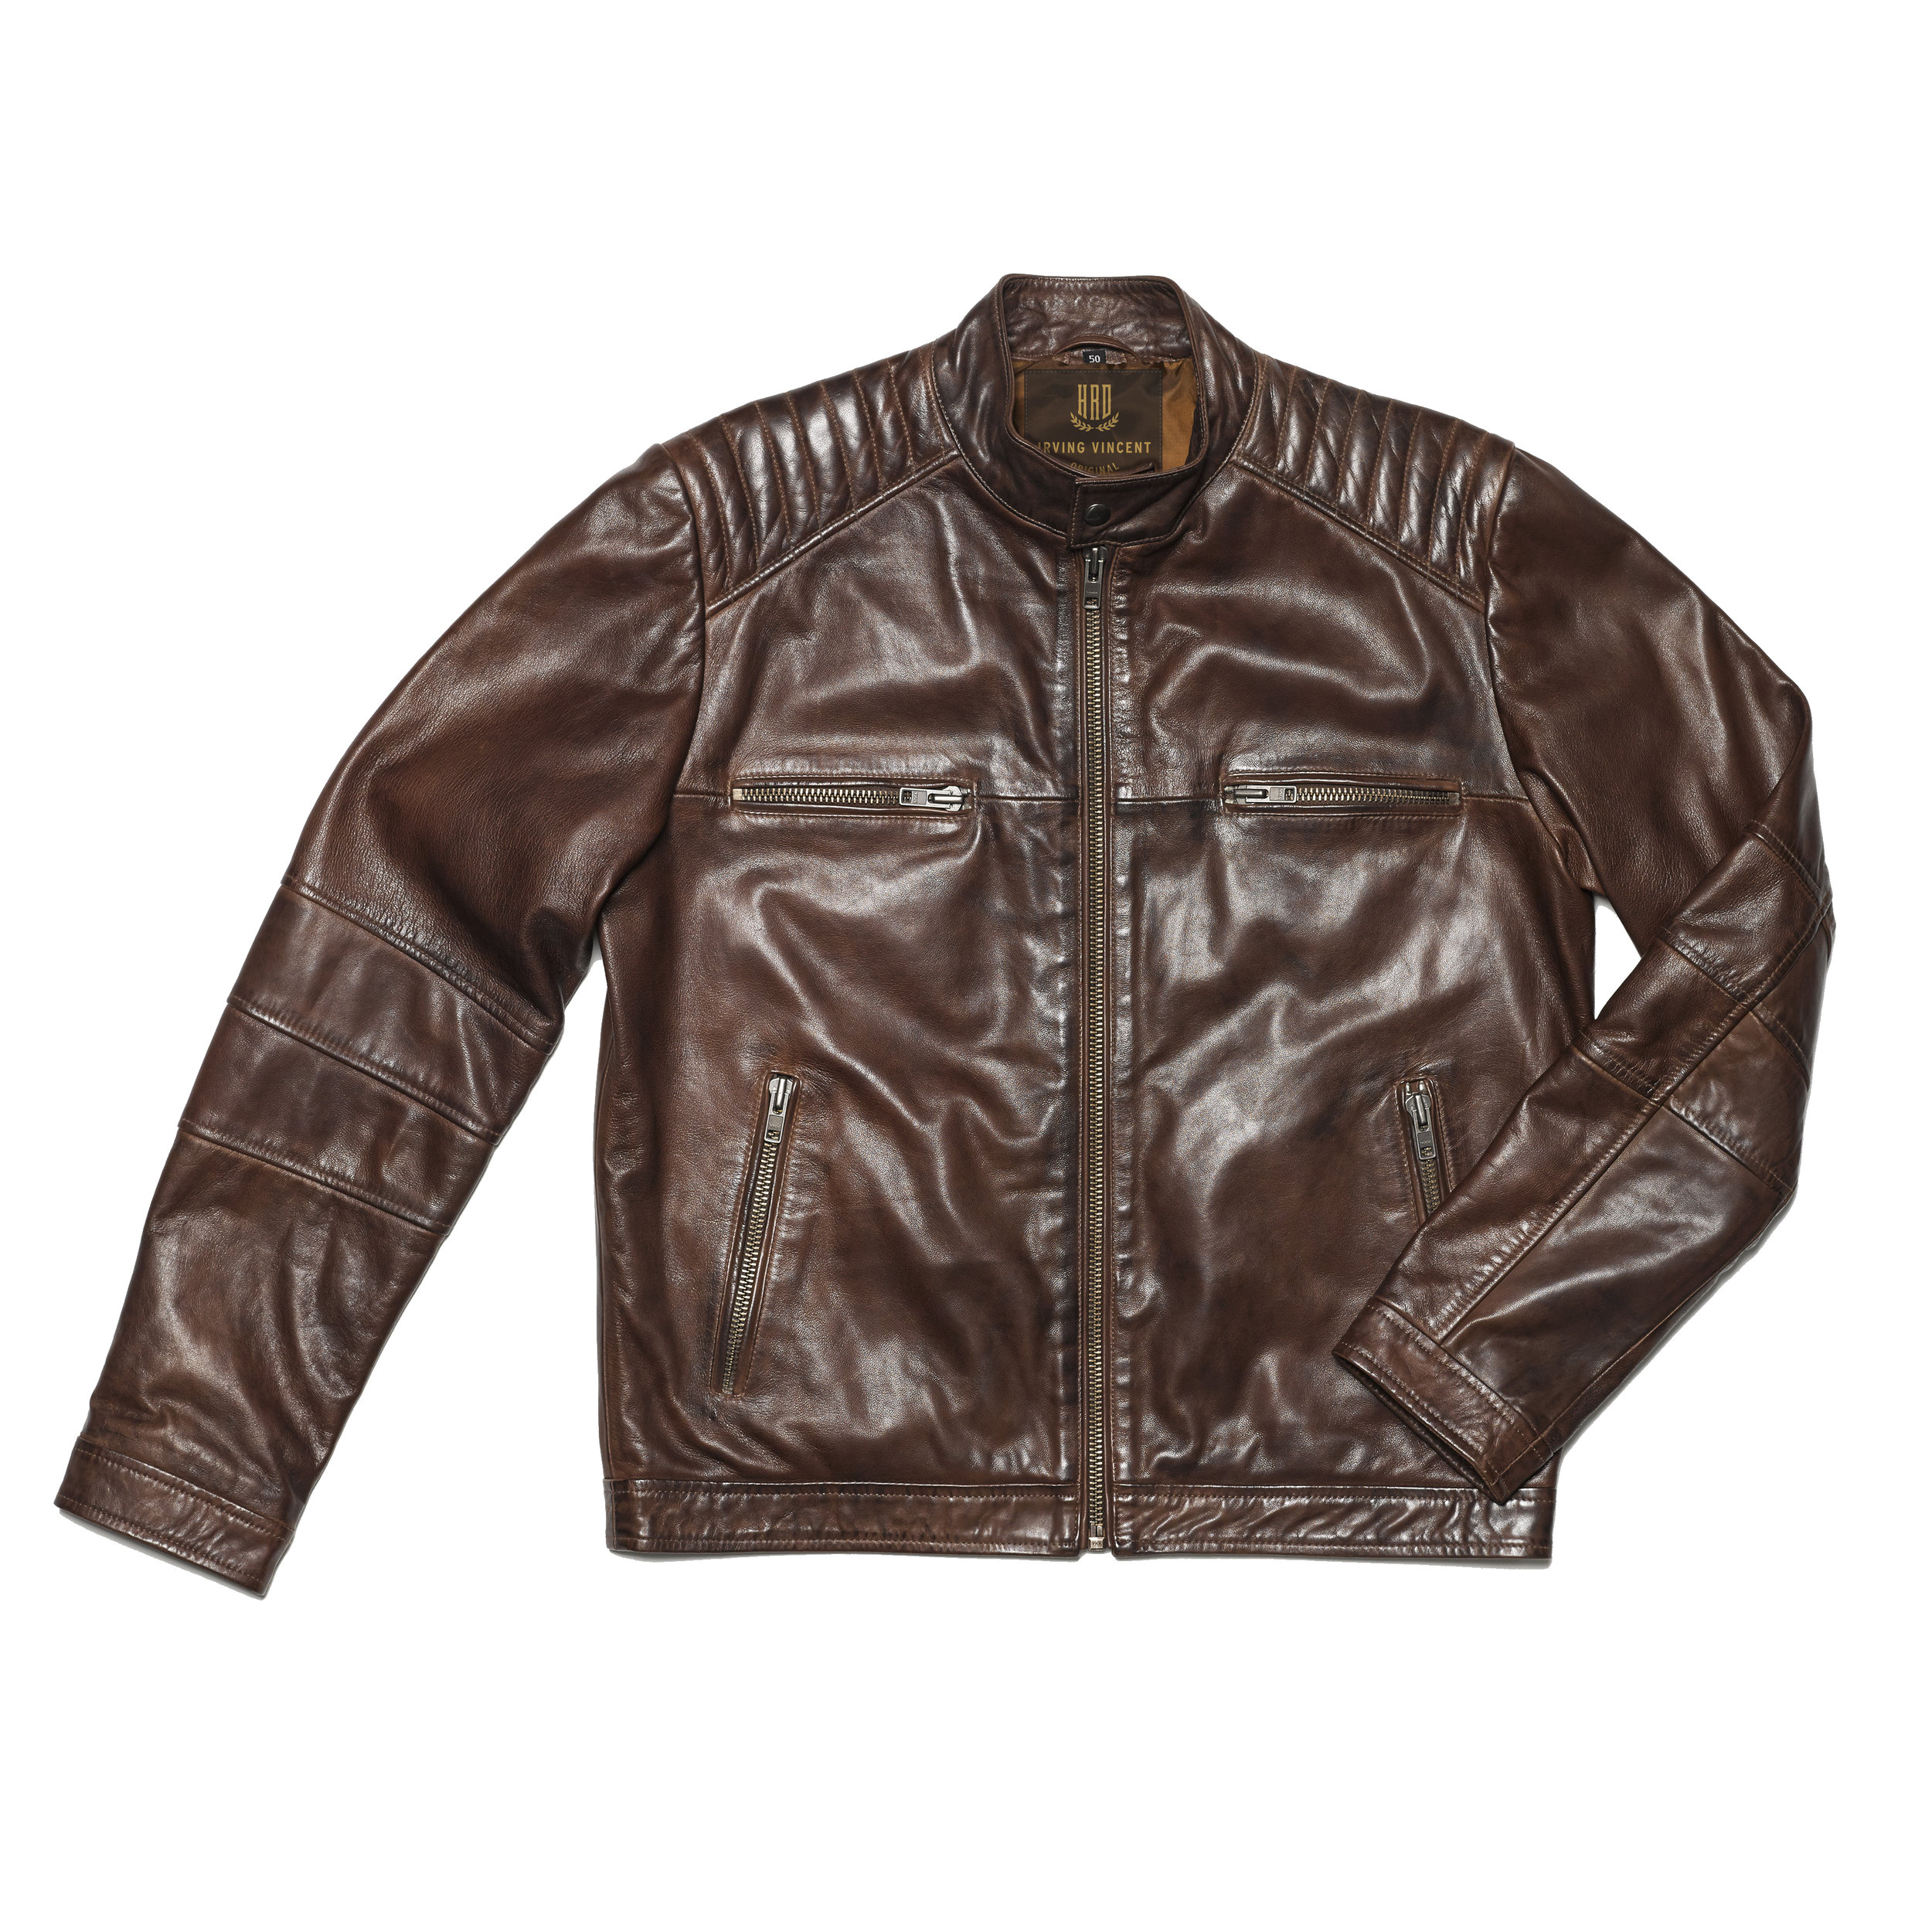 Broadford Genuine Leather Jacket